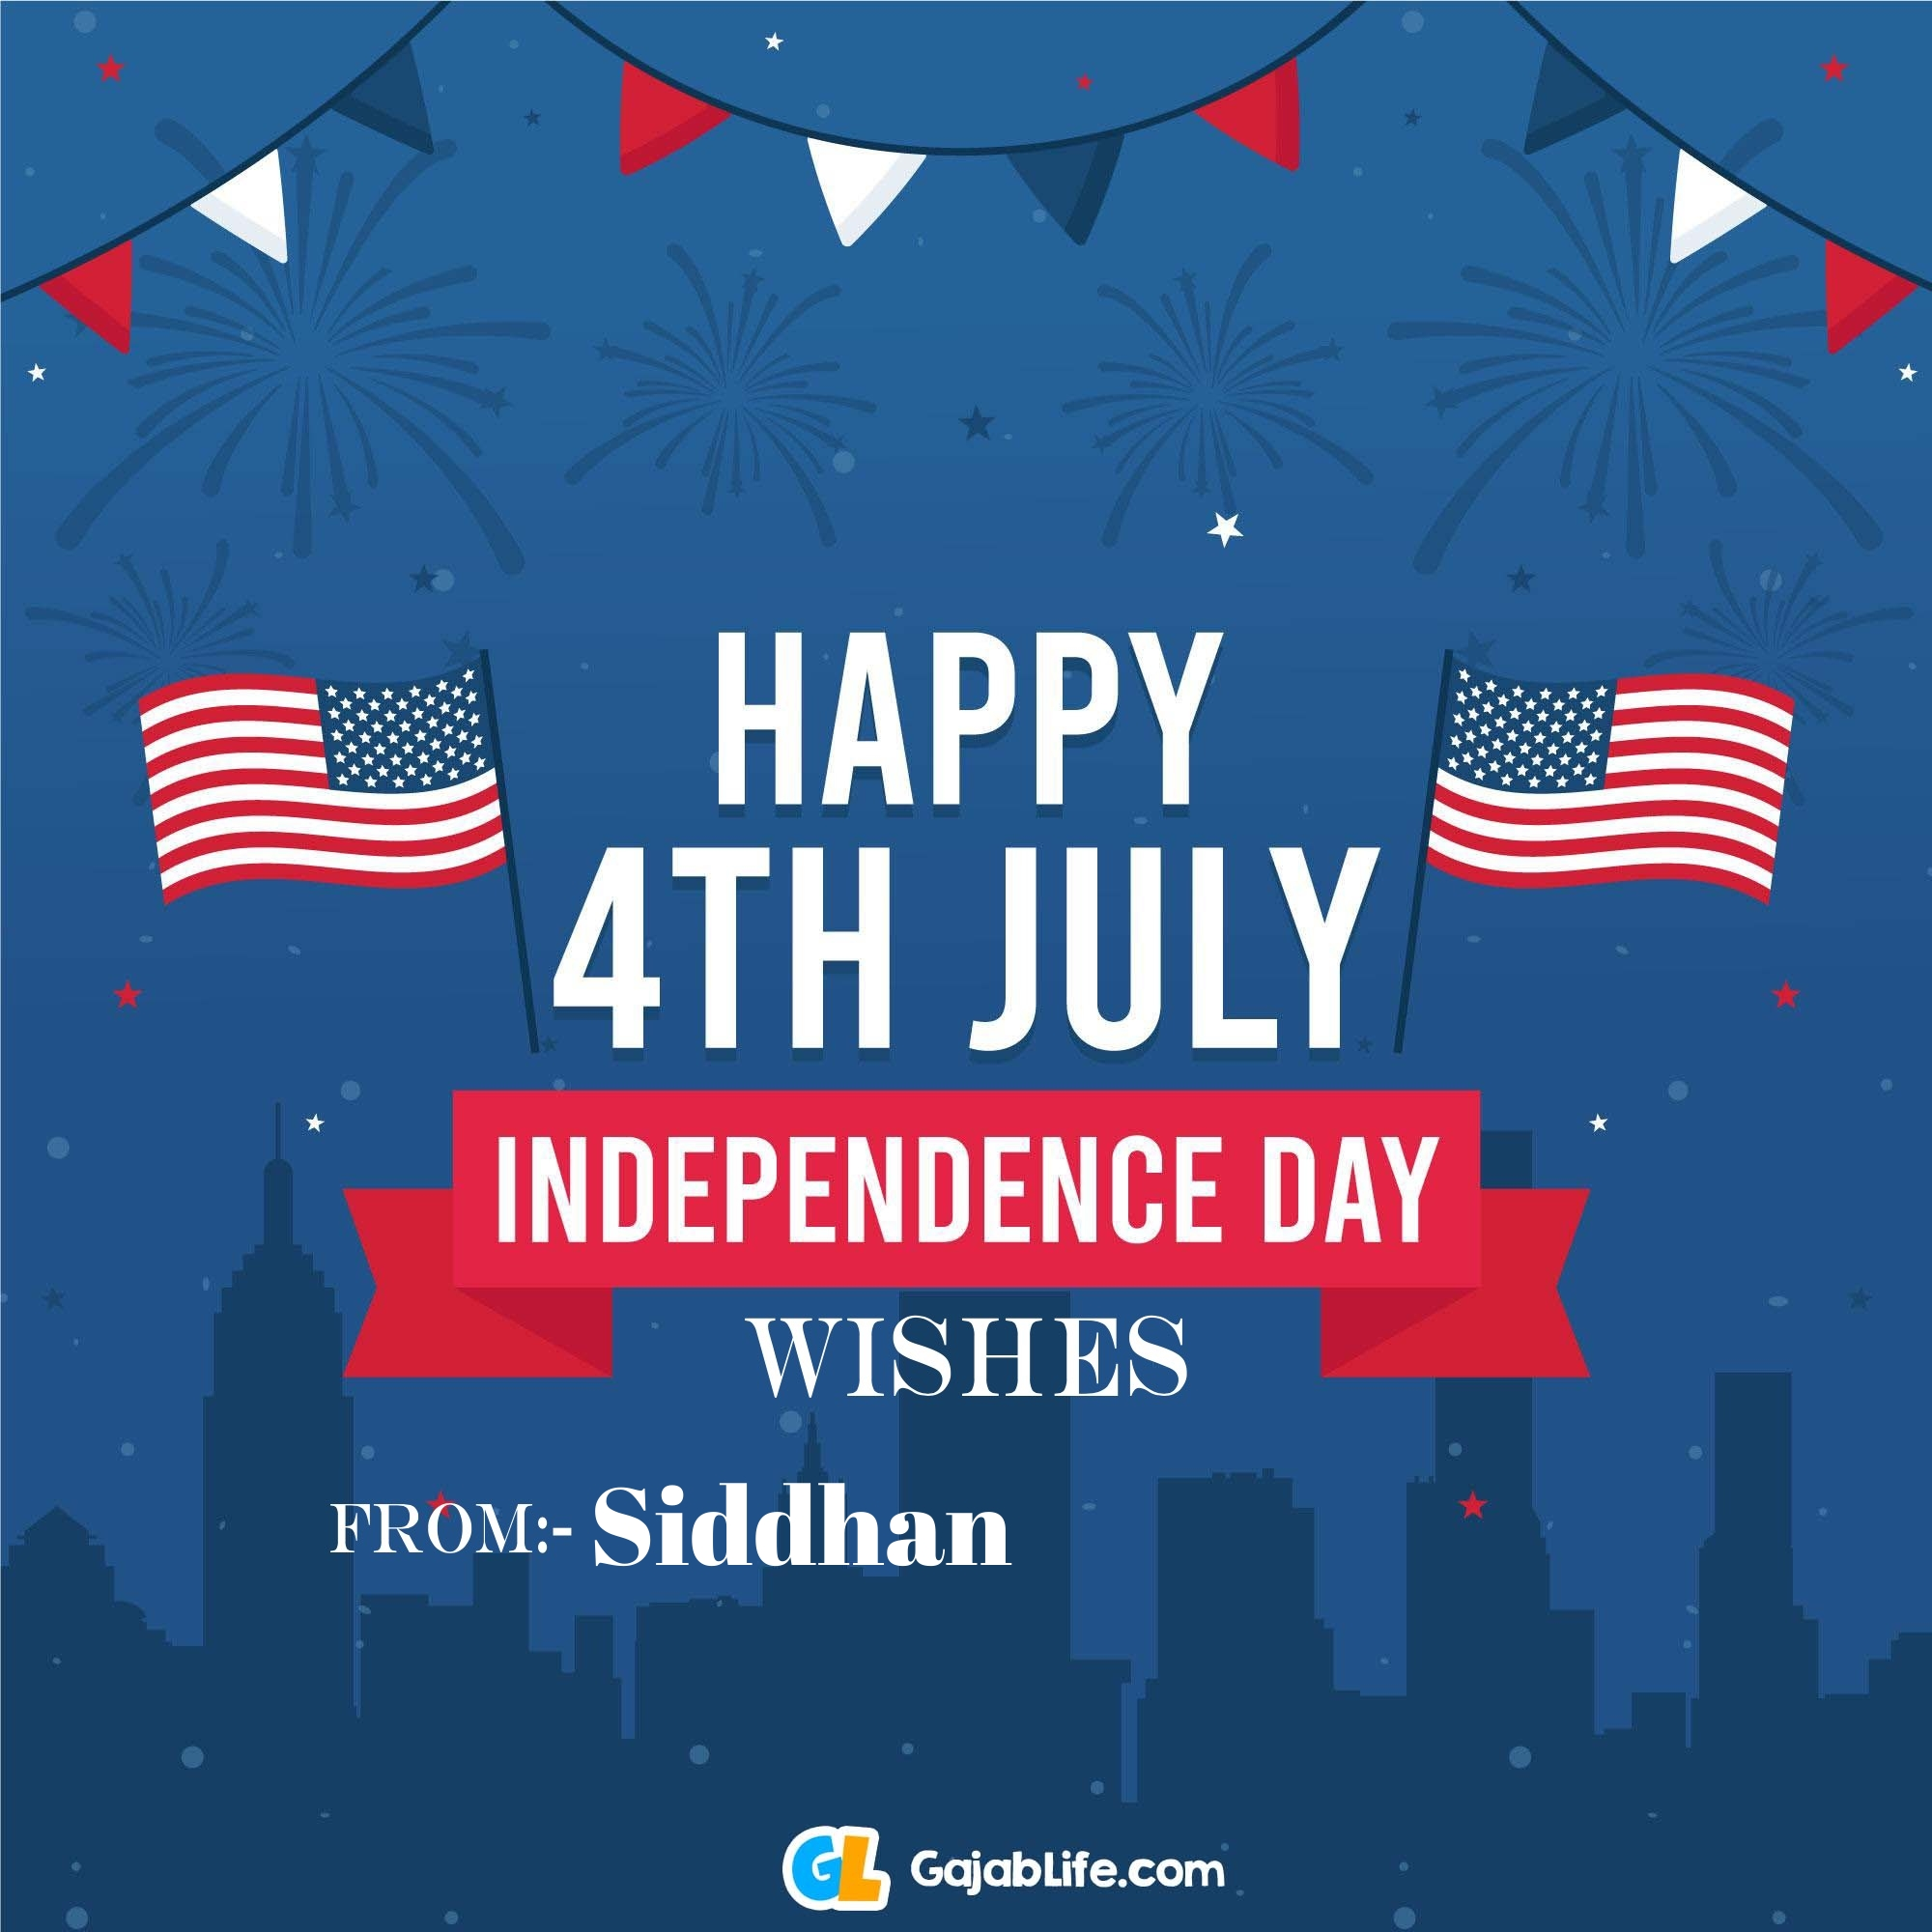 Siddhan happy independence day united states of america images